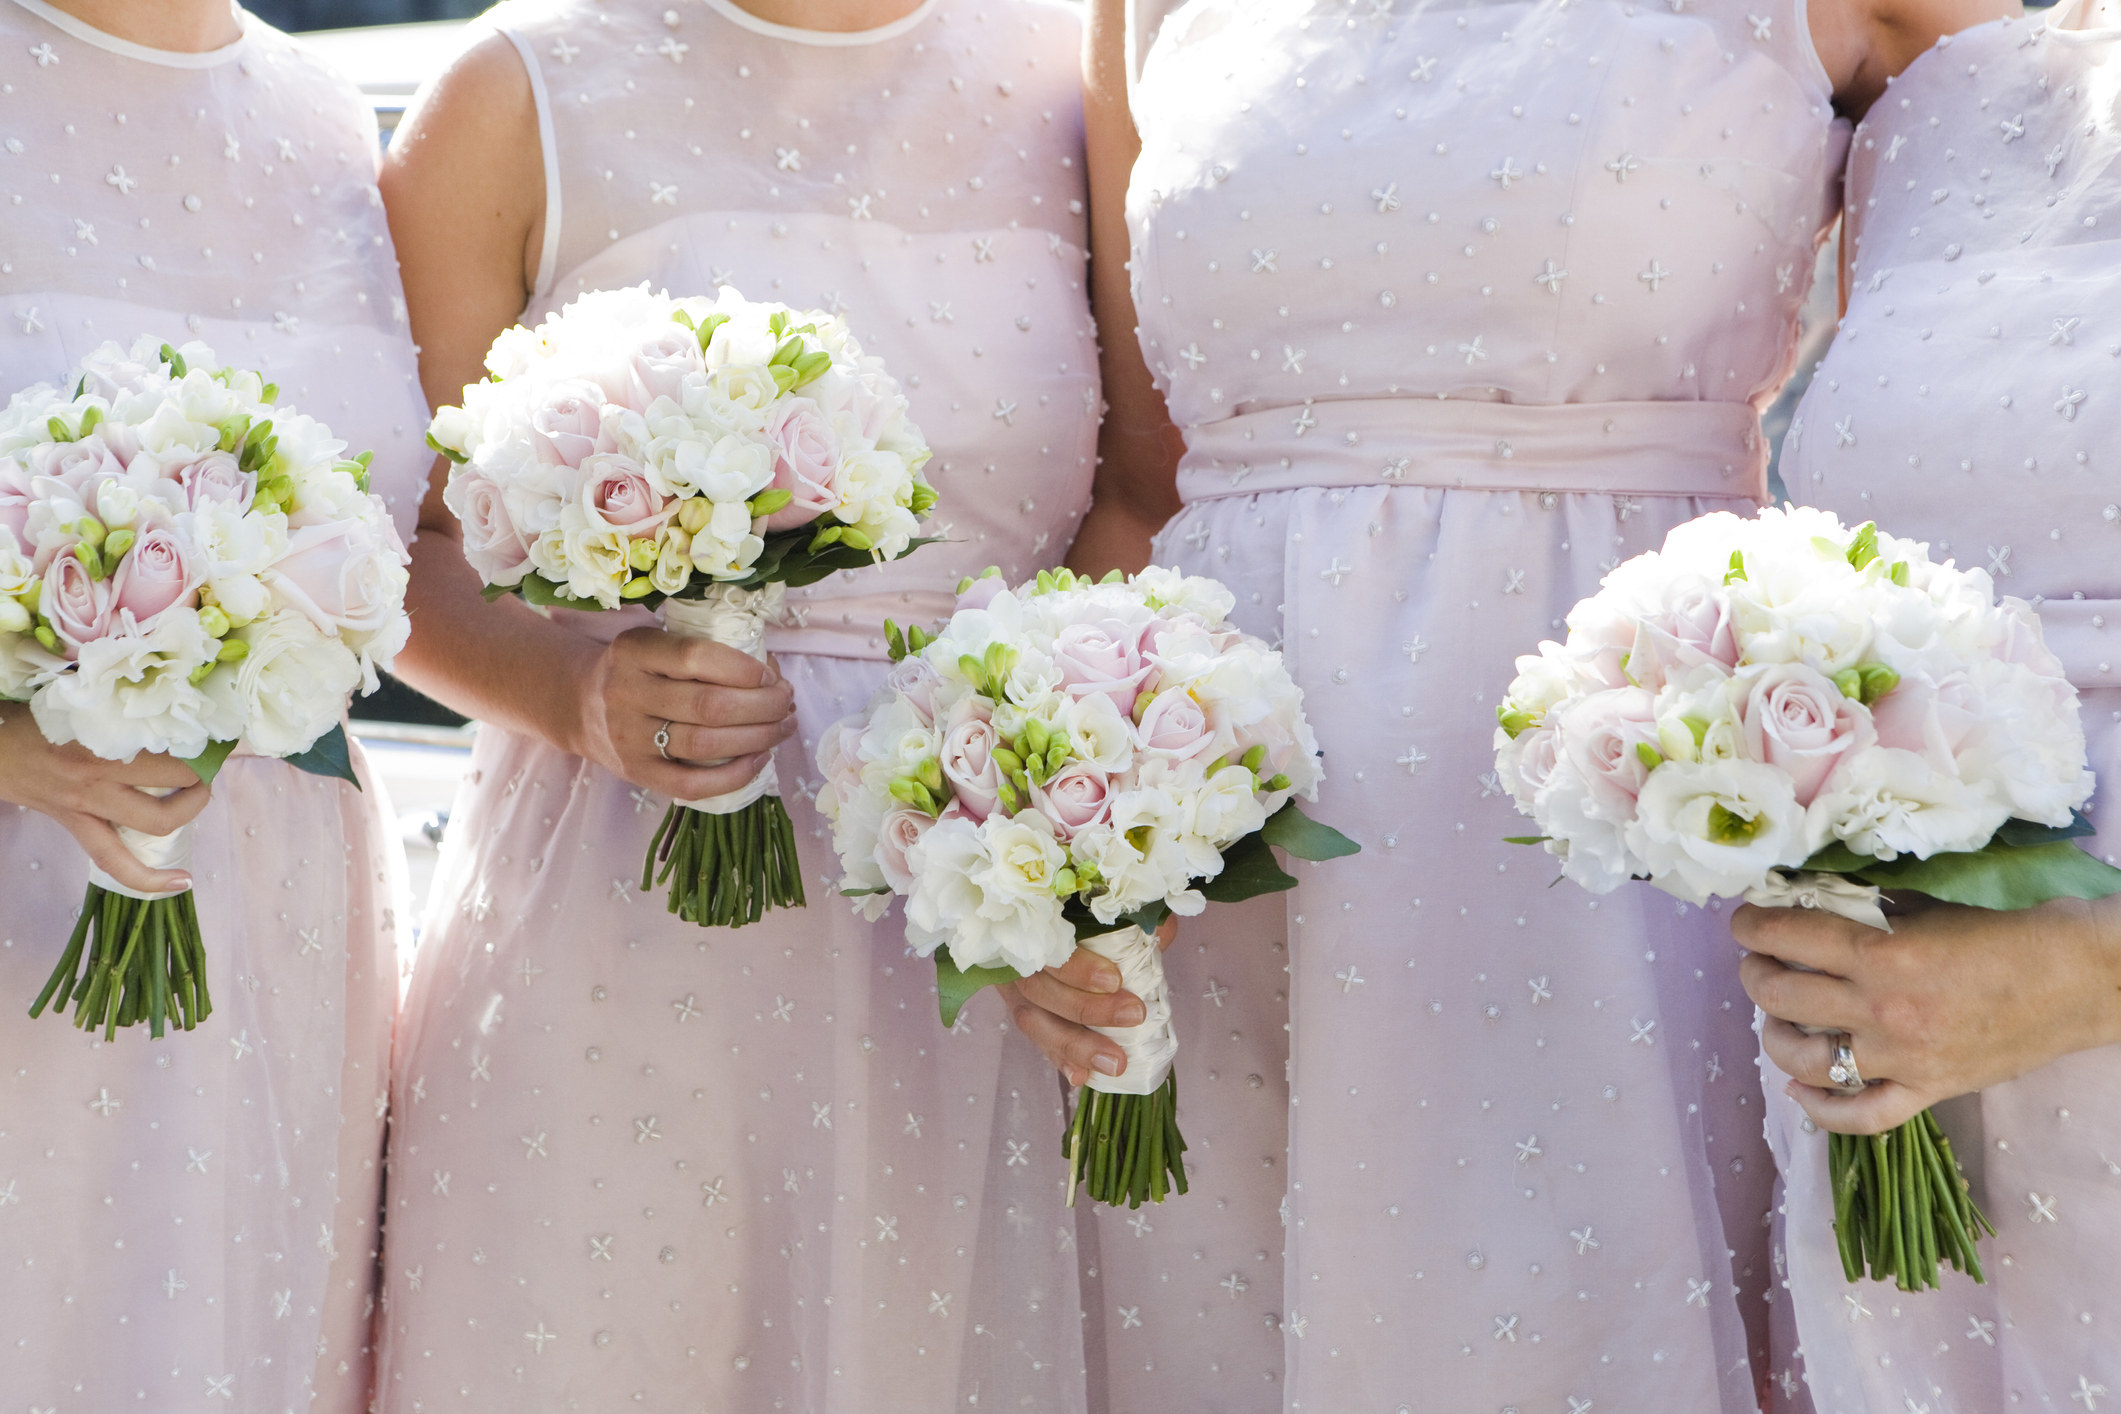 A group of bridesmaids pose in matching dresses